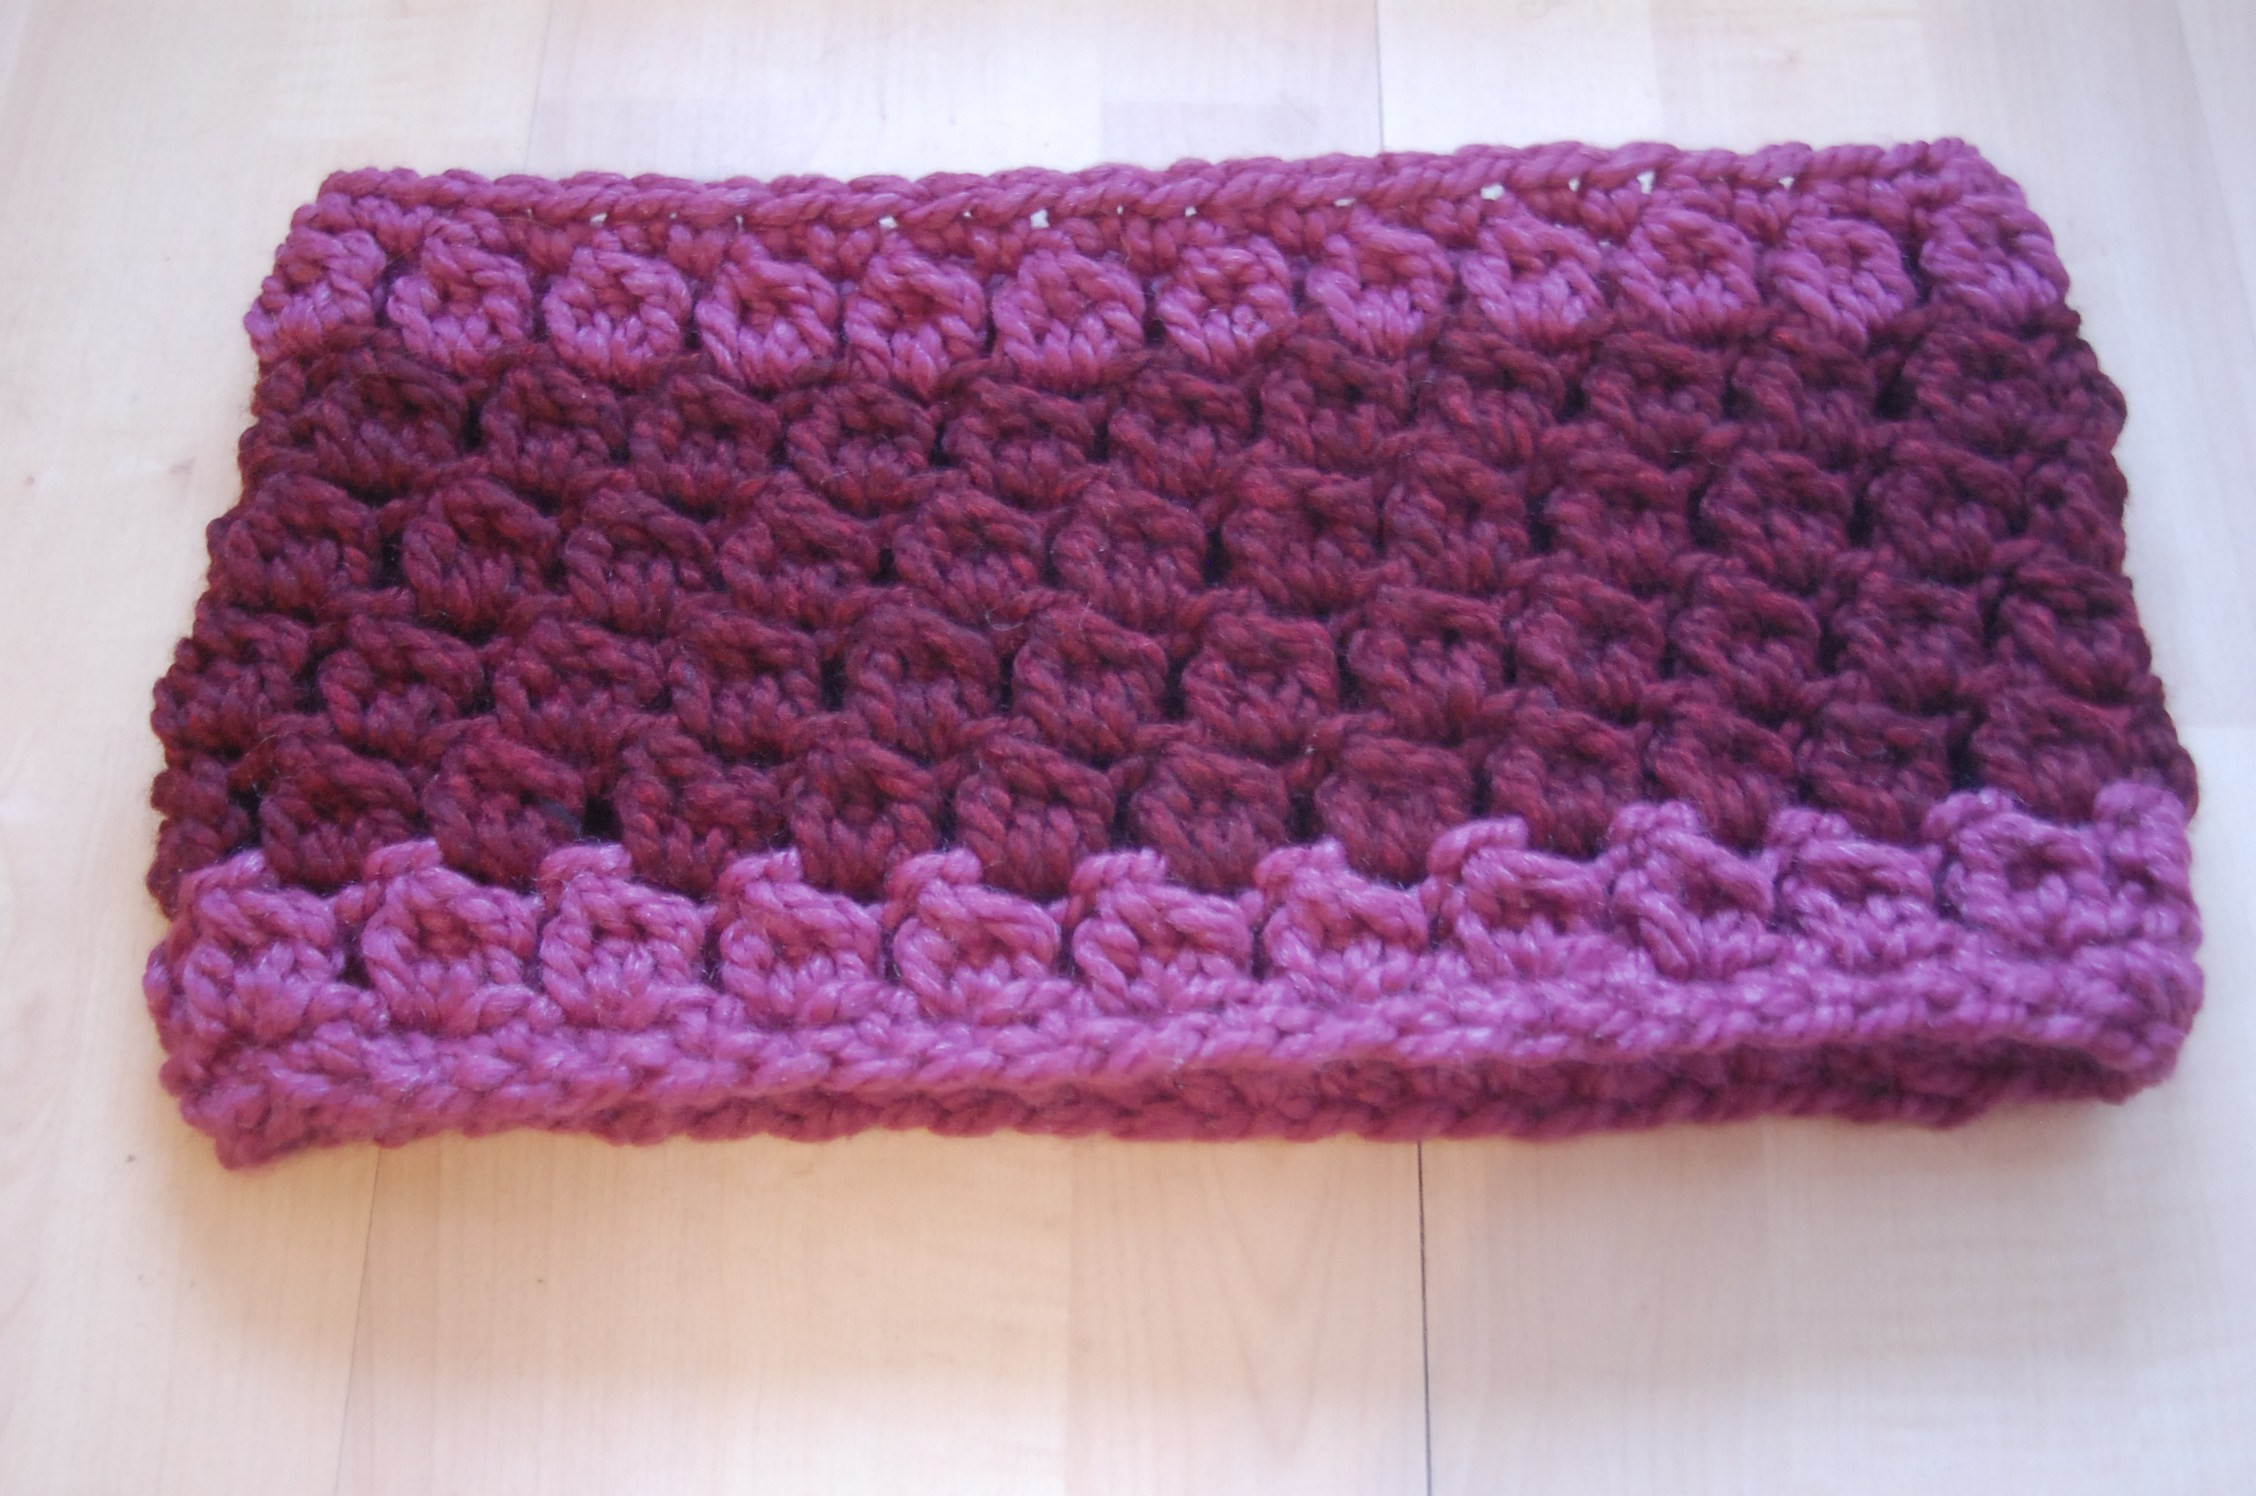 Simple Crochet Patterns New Easy & Quick Crochet Cowl Pattern Of Delightful 49 Models Simple Crochet Patterns